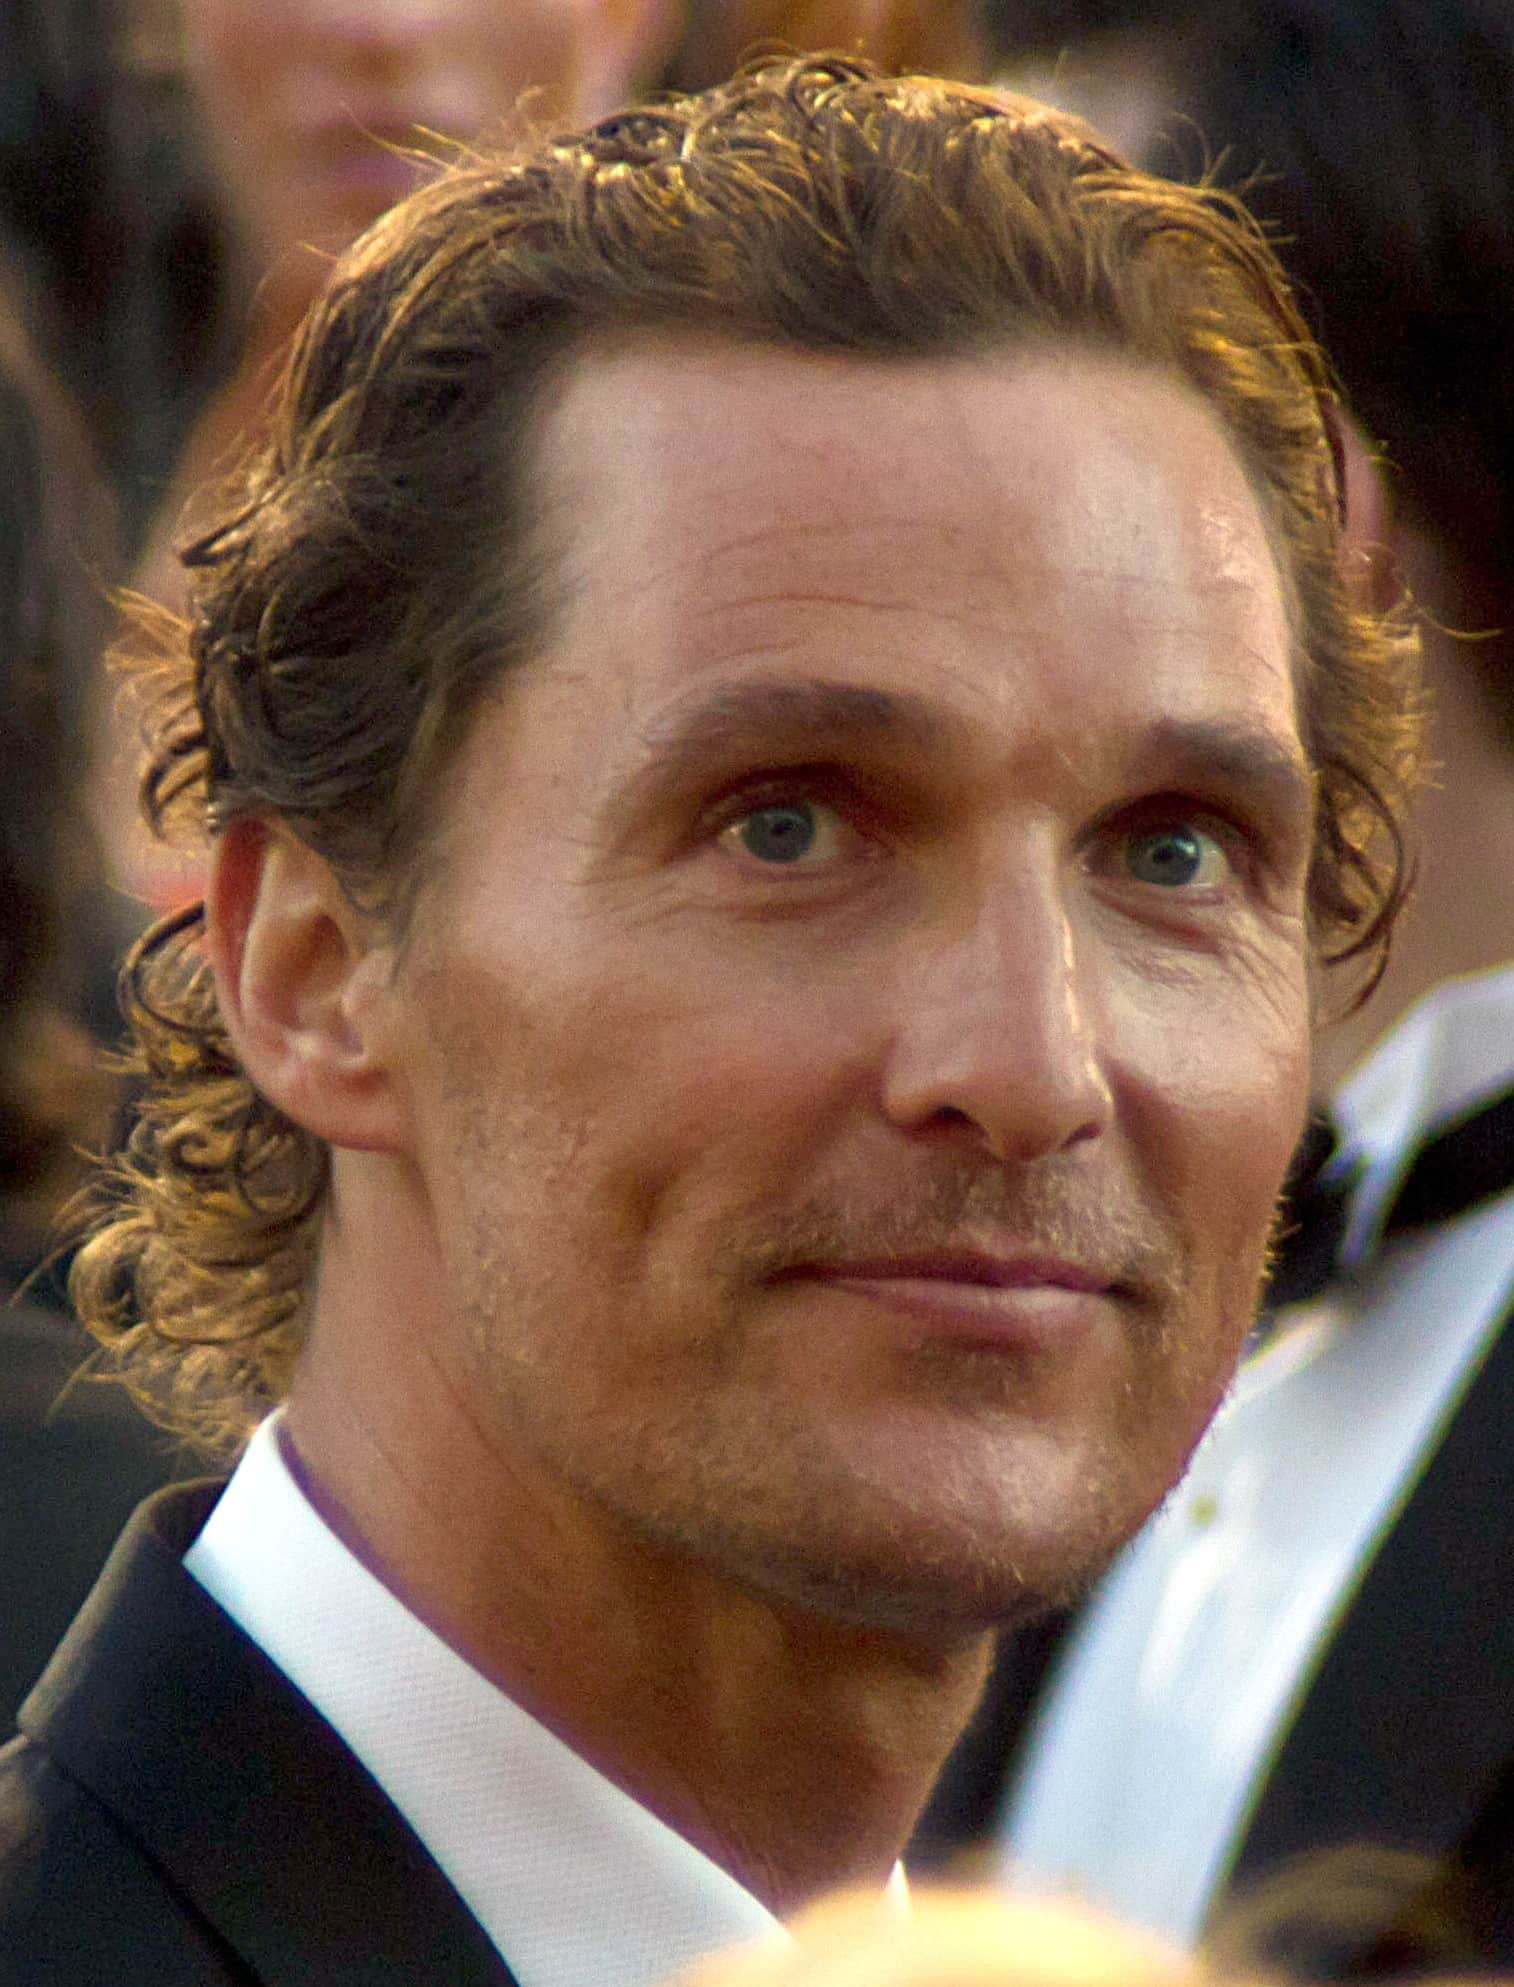 Photograph by David Torcivia of Actor Matthew McConaughey at the 83rd Academy Awards in 2011